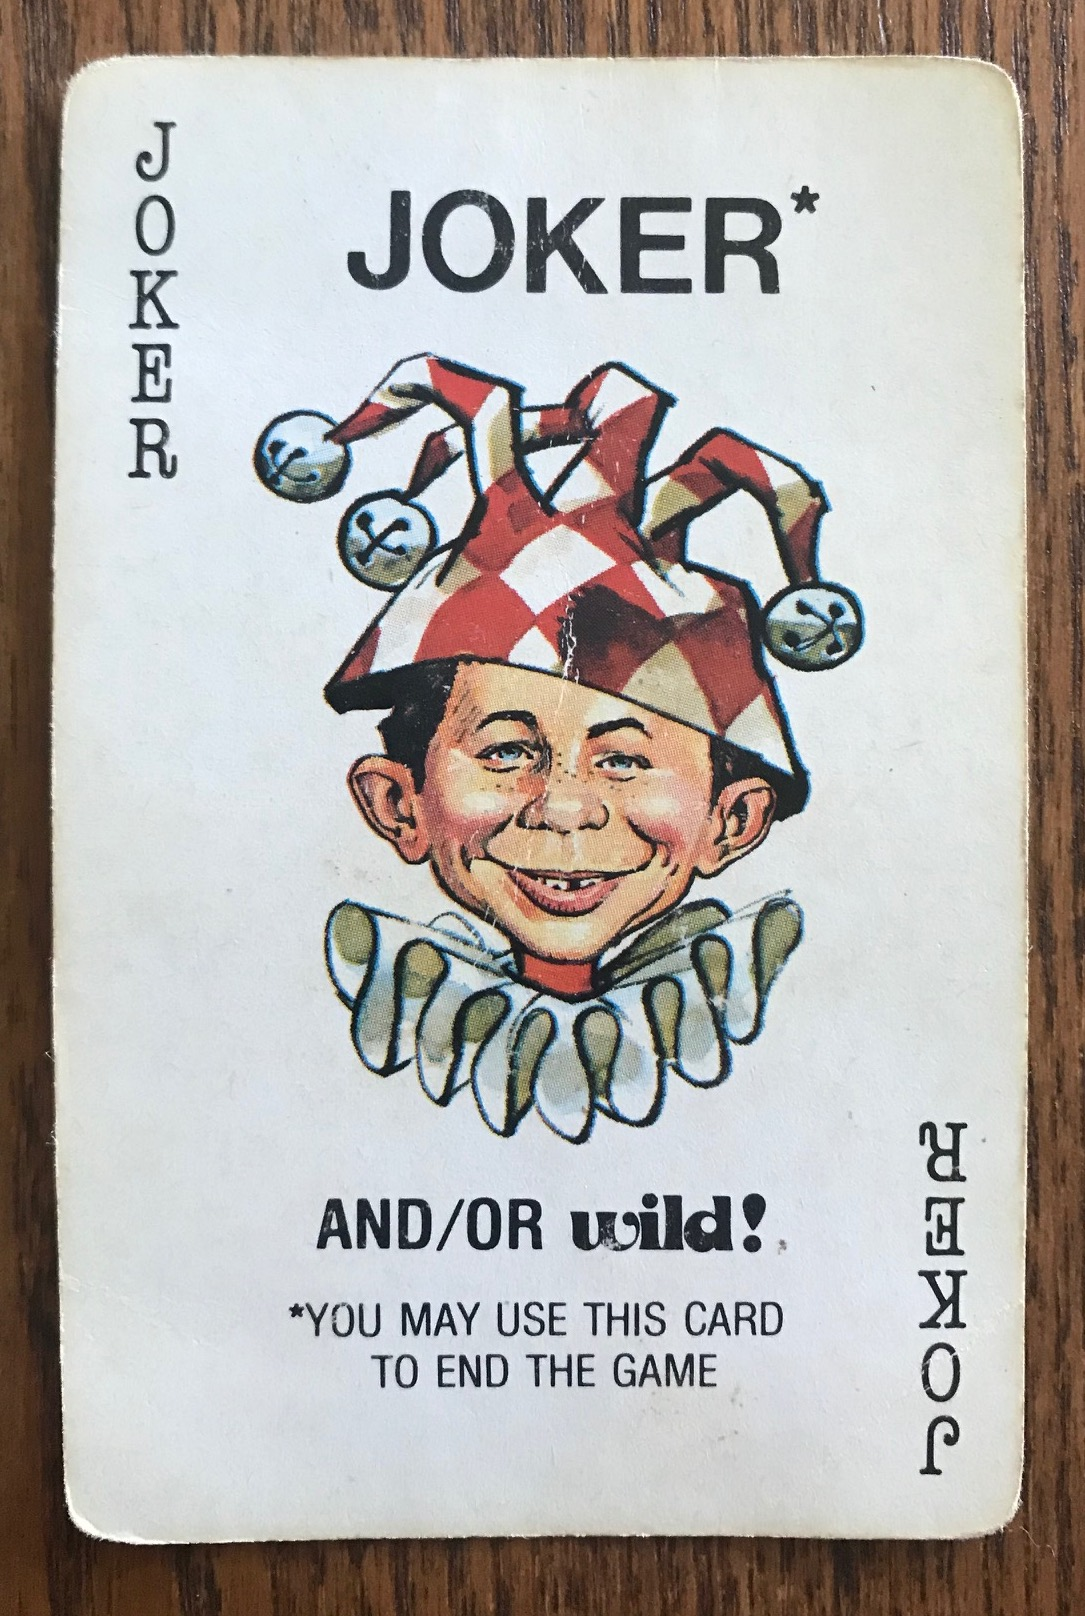 The Joker card shows Alfred E Neuman in a jester hat